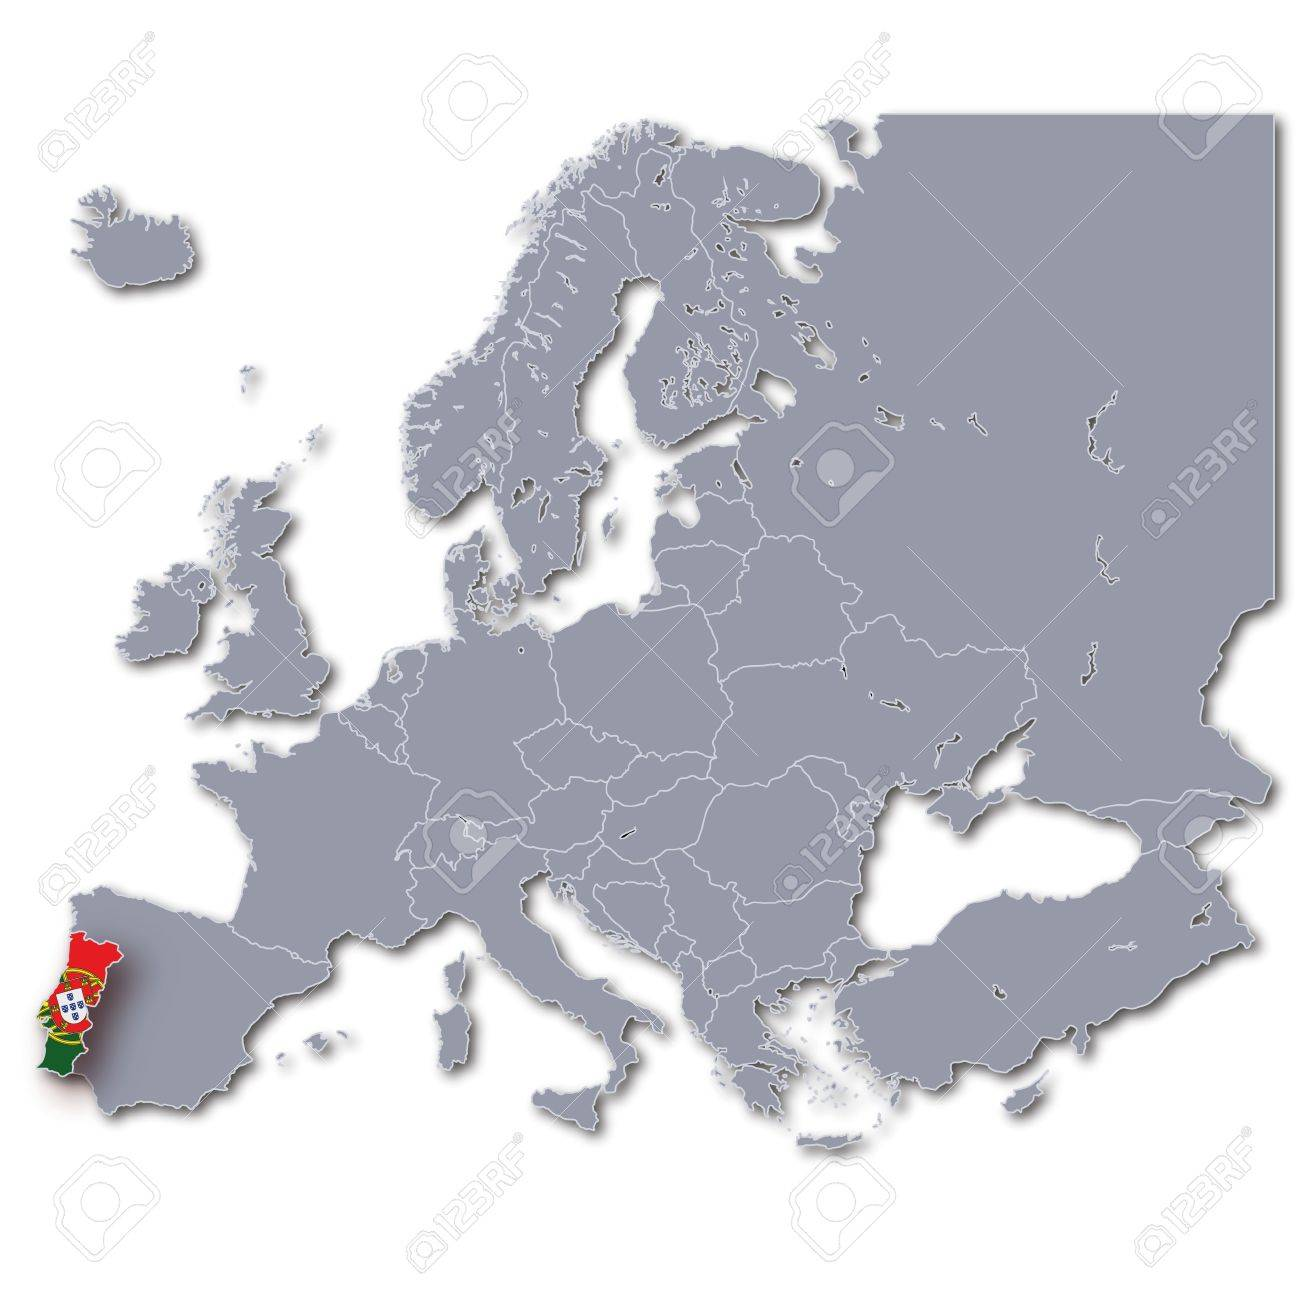 Europe Map Portugal Stock Photo Picture And Royalty Free Image